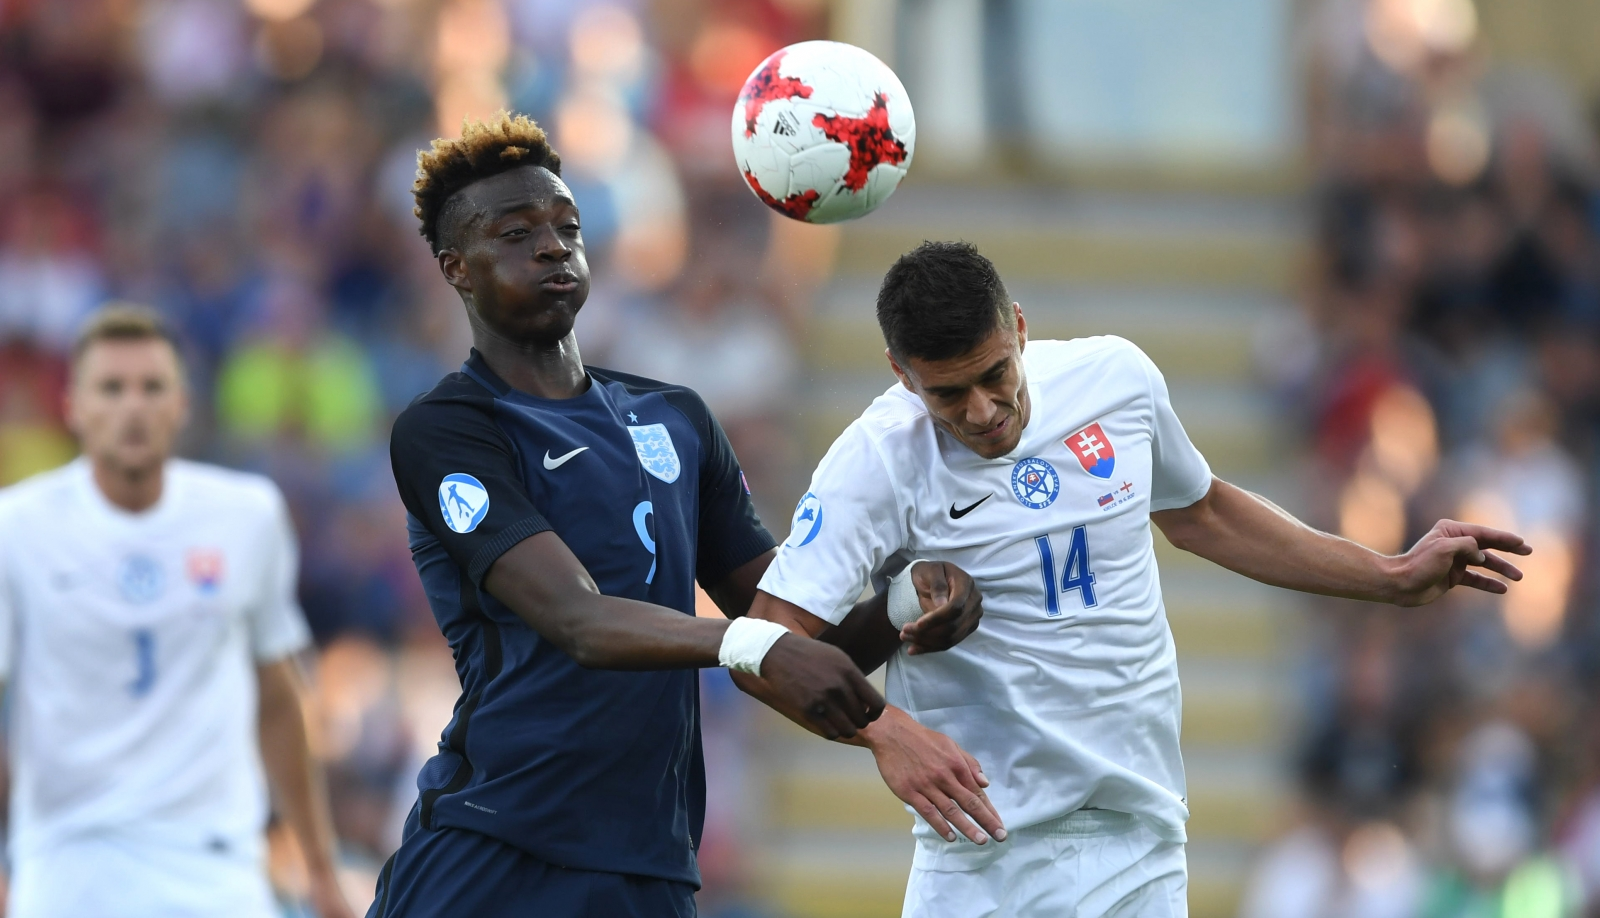 Tammy Abraham's big new Chelsea deal